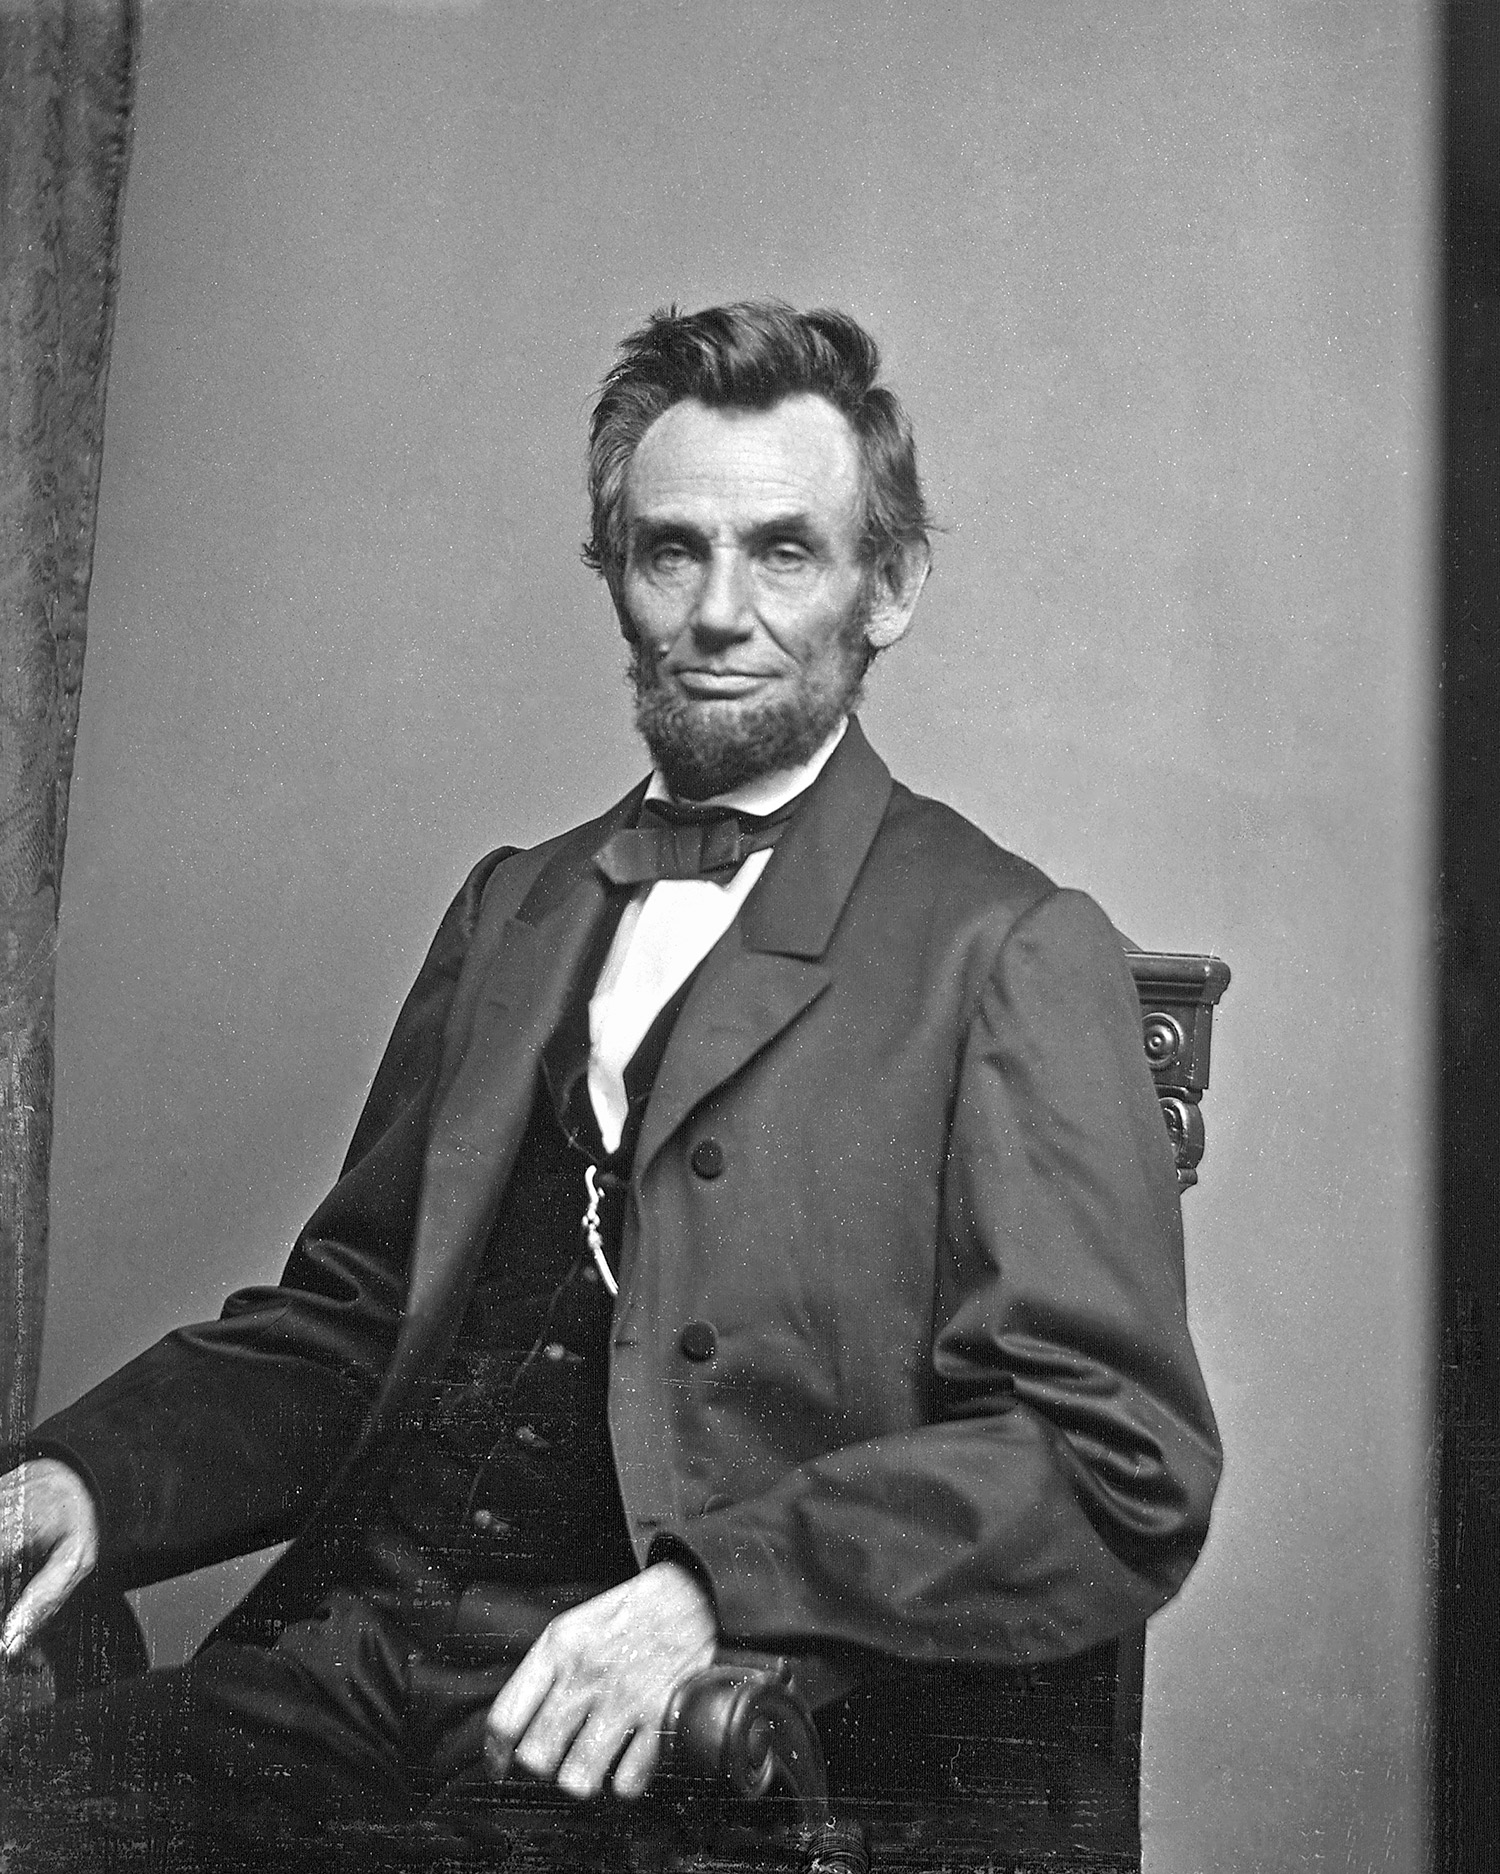 Abraham Lincoln portrait, 1884